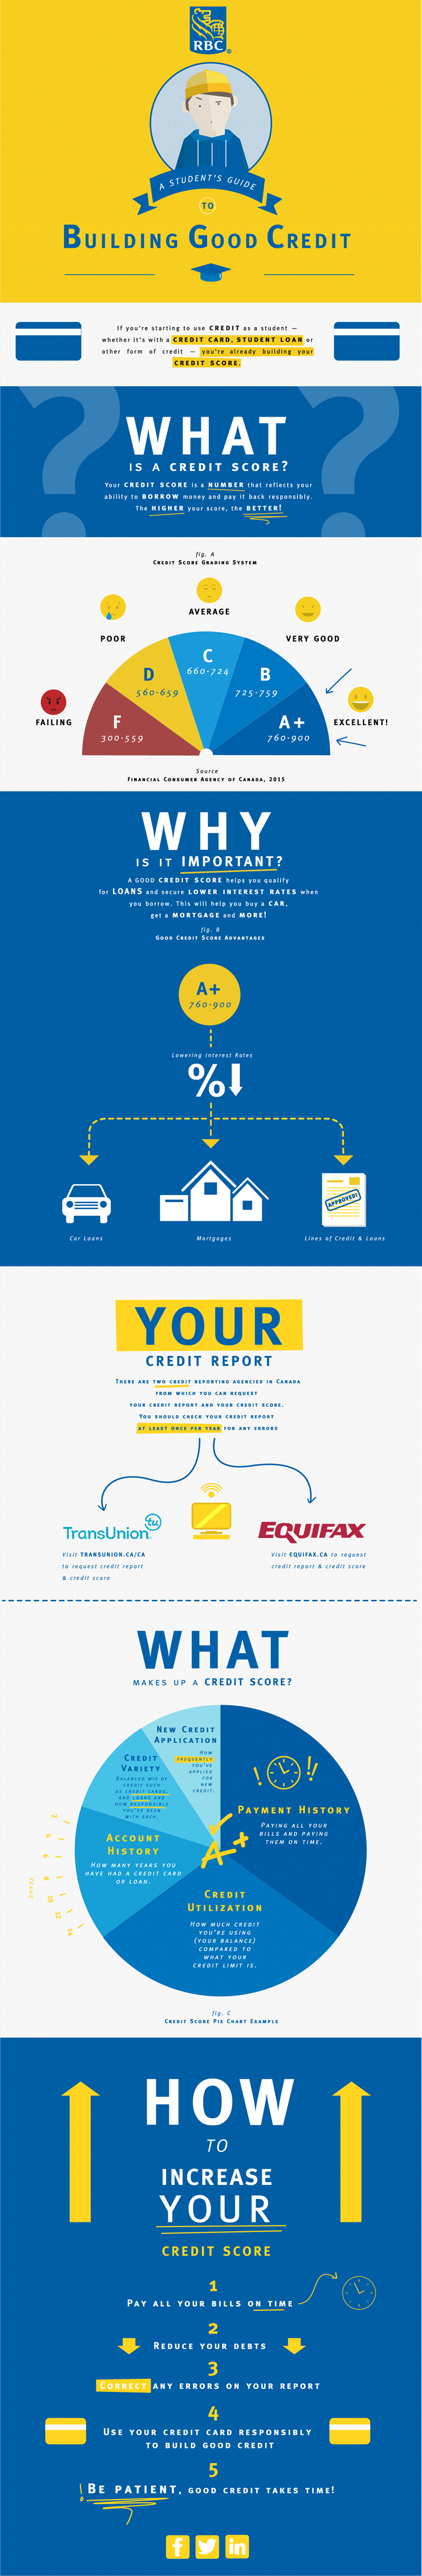 Building Good Credit (infographic)